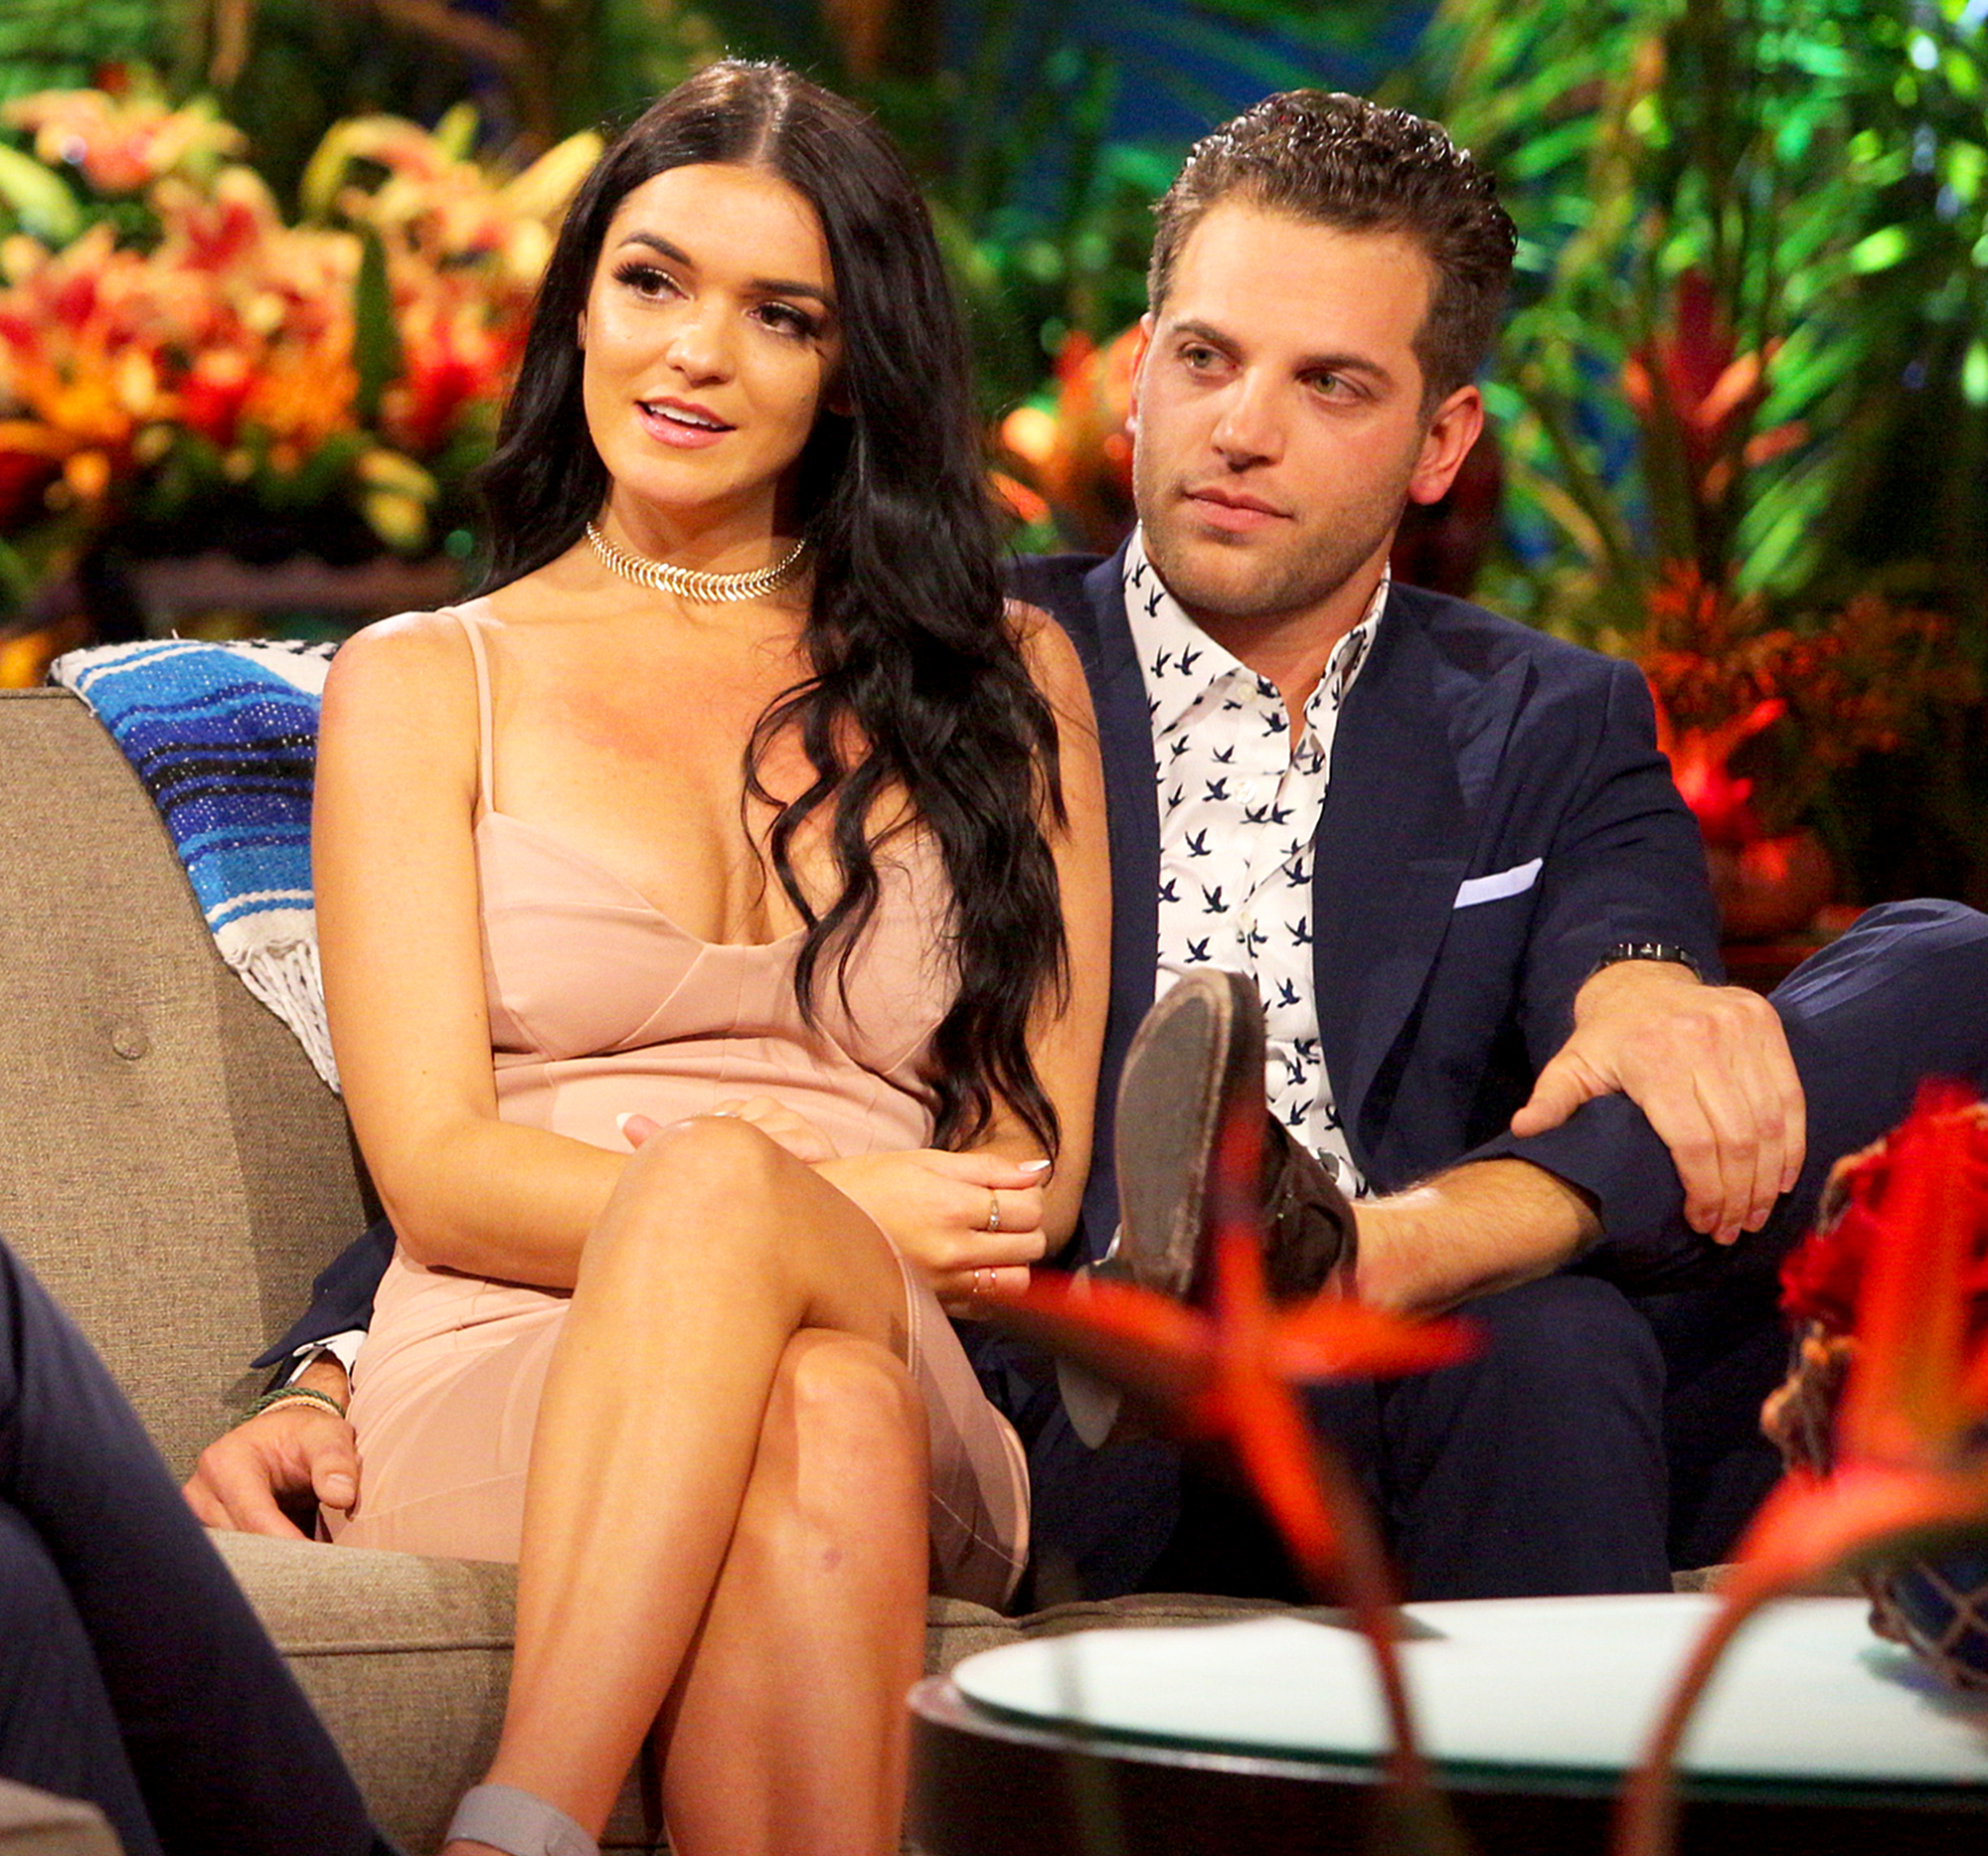 Julia bachelor in paradise dating advice